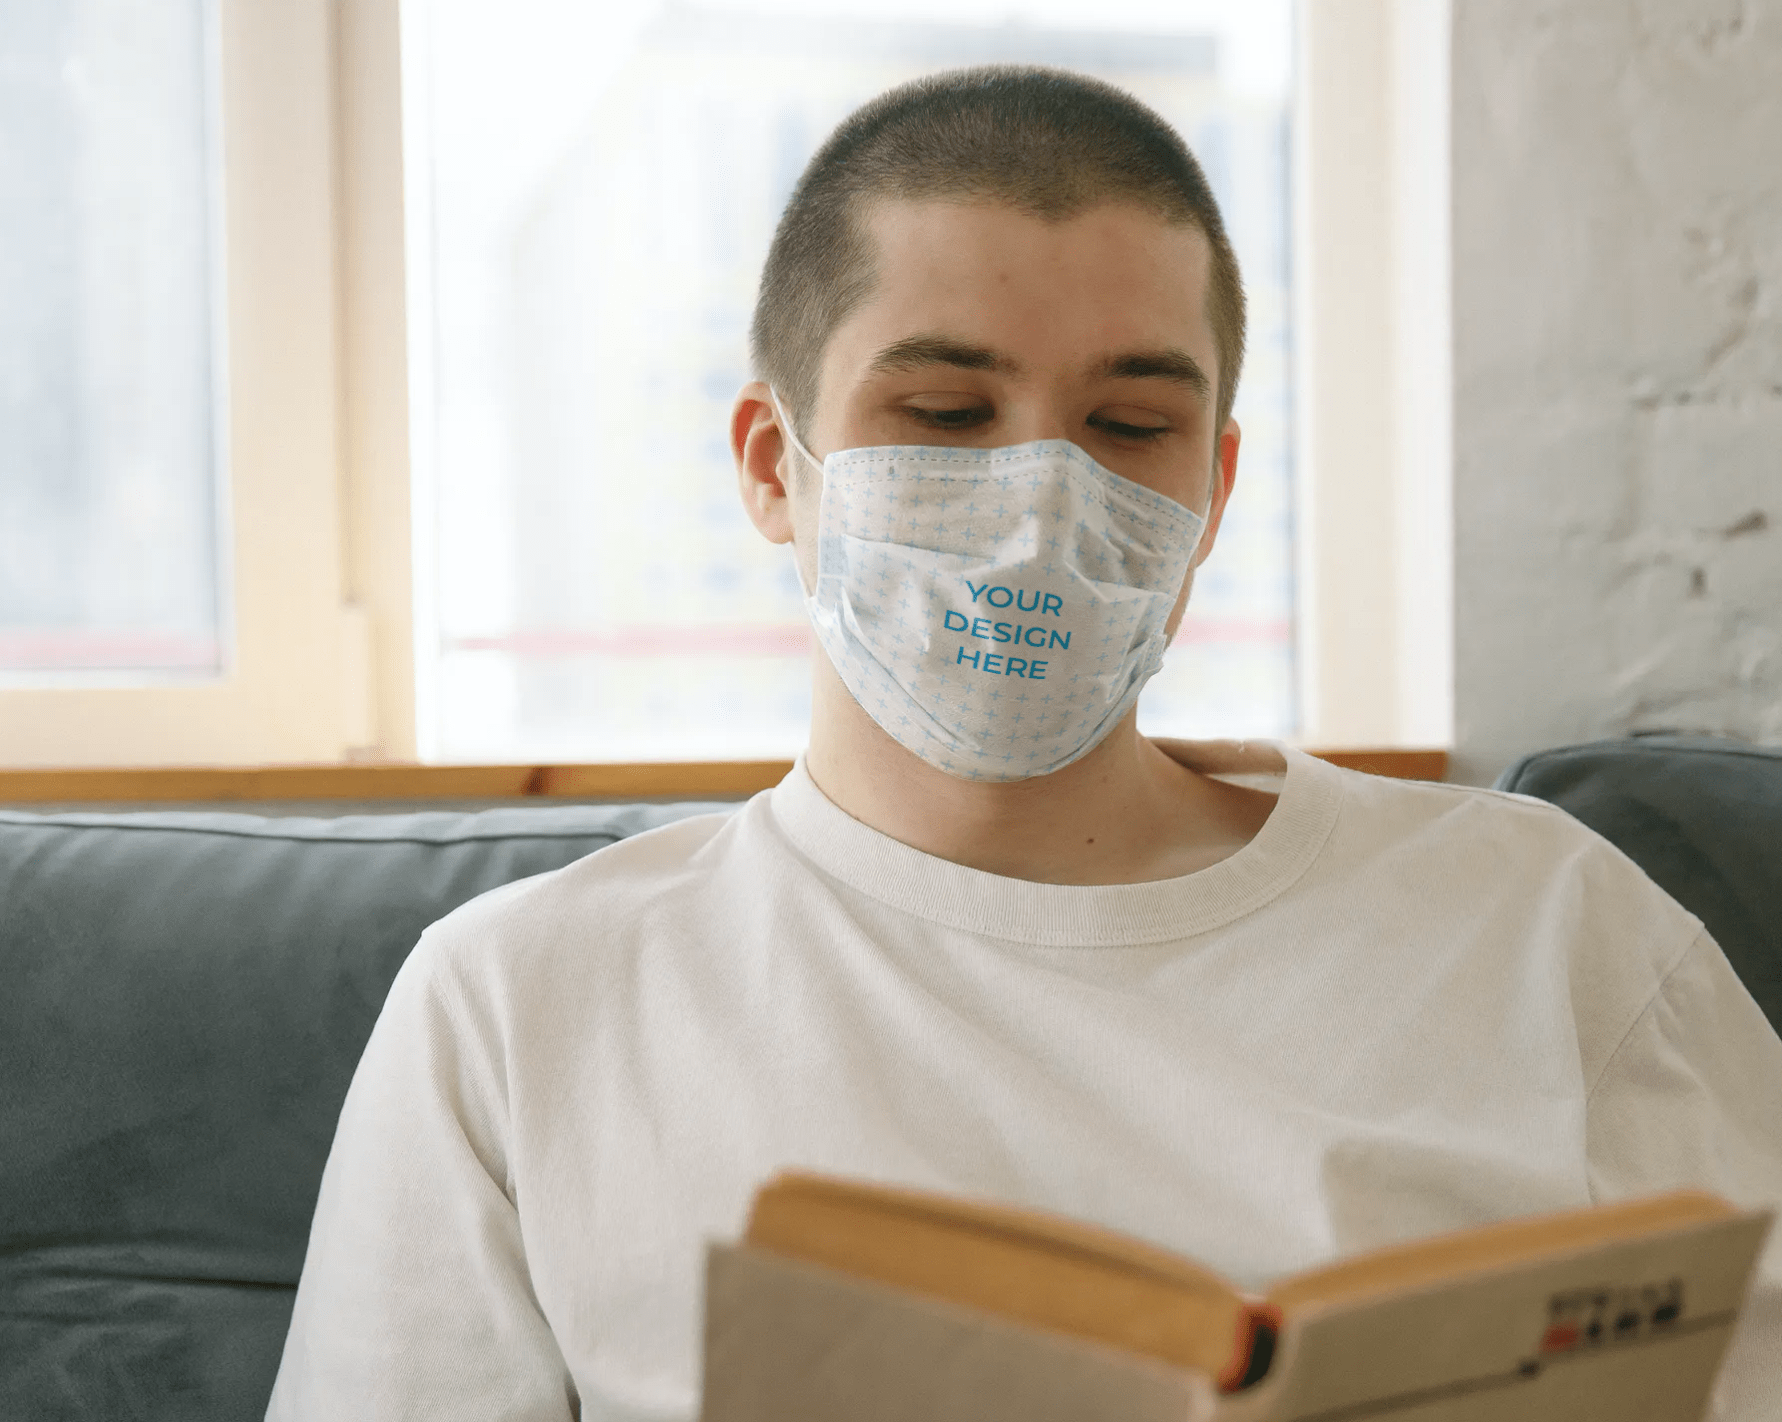 Man Wearing a Face Mask Reading a Book Free Mockup Generator